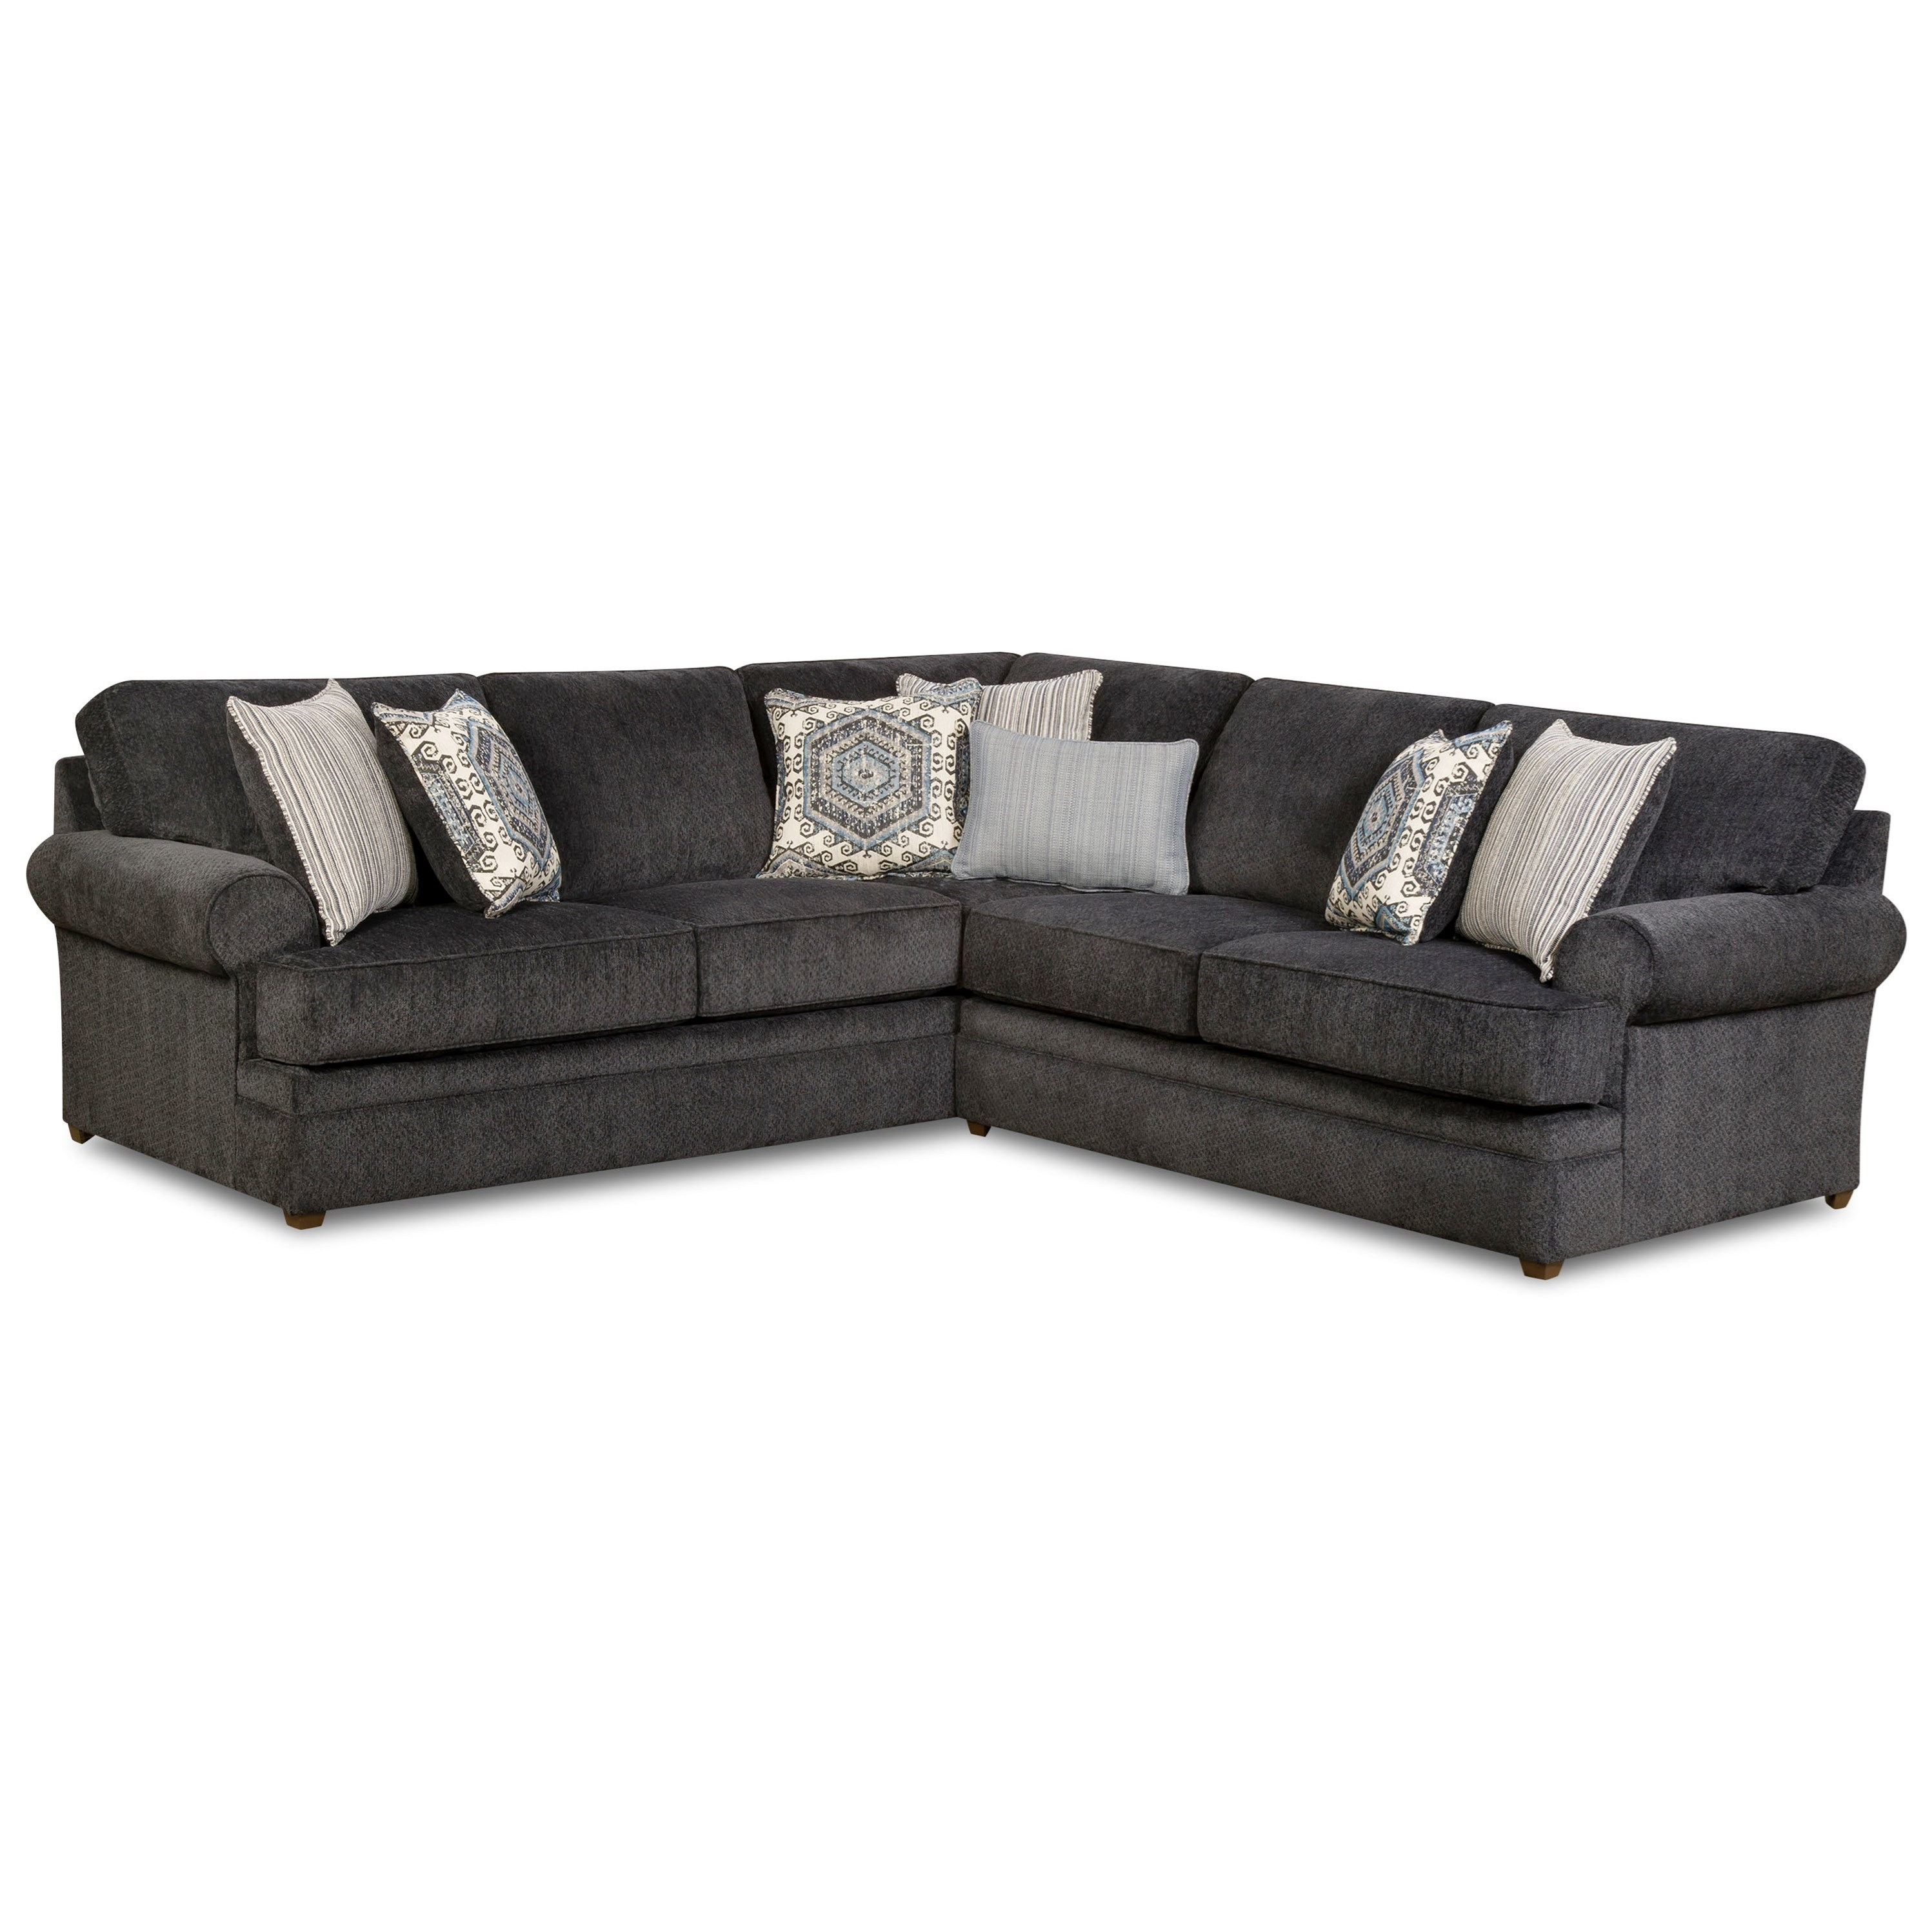 8530 BR Transitional Sectional Sofa by United Furniture Industries at Pilgrim Furniture City